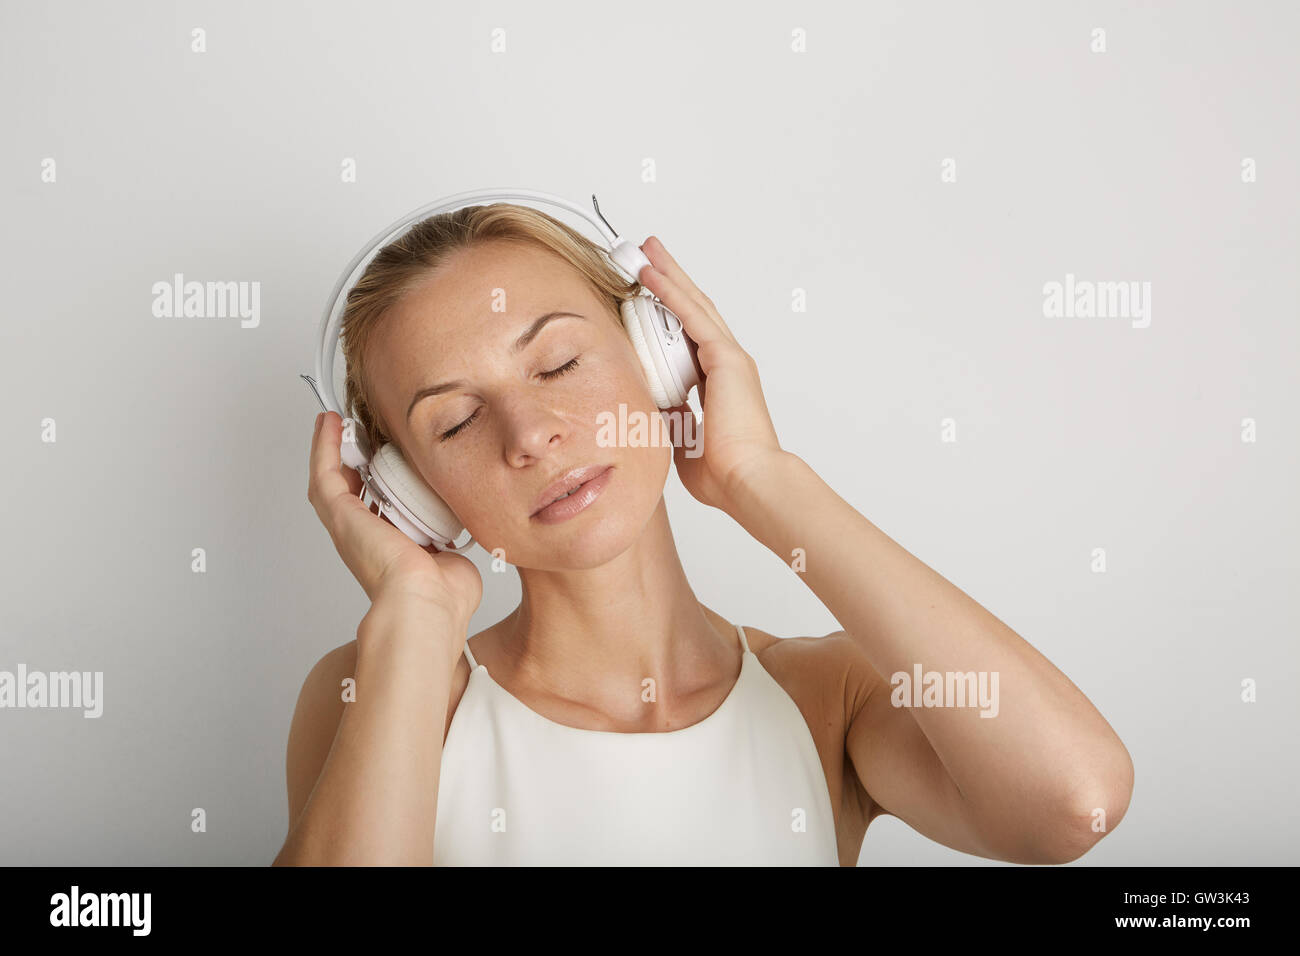 Portrait Handsome Young Woman Listening Headphones.Dreaming Music Player Blank Yellow Color Background.Pretty Girl - Stock Image